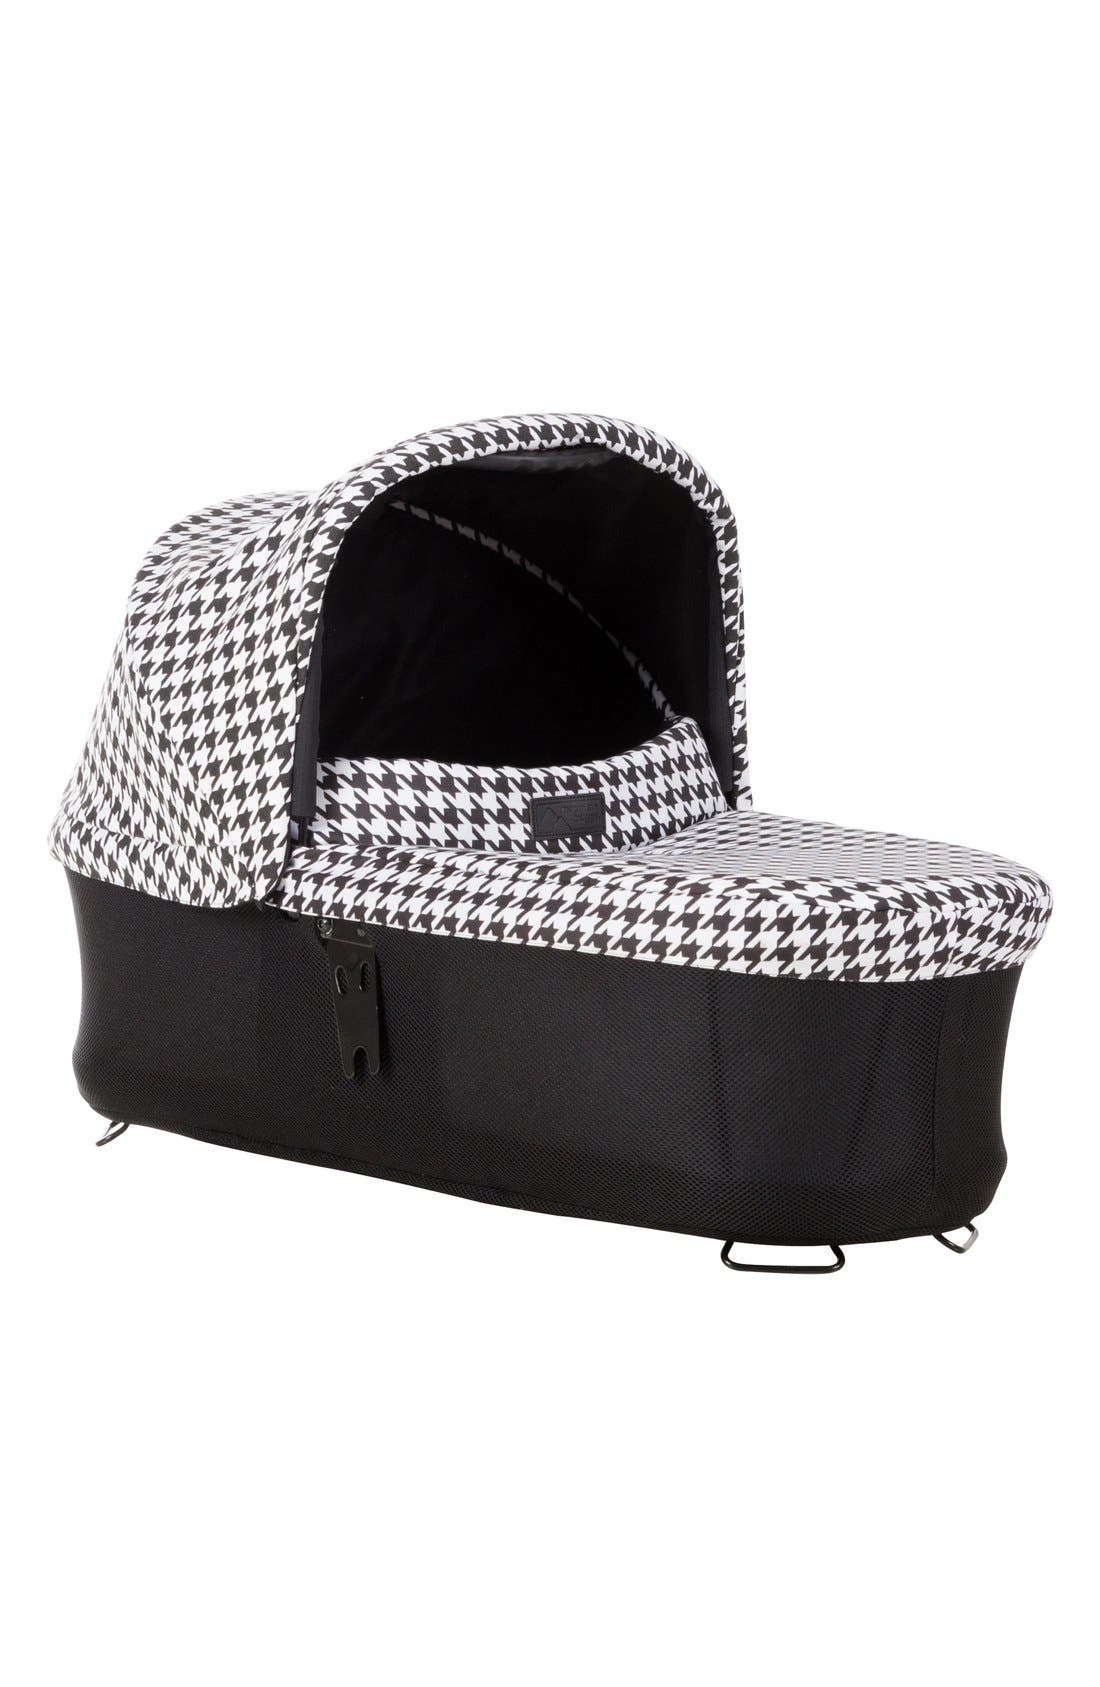 Mountain Buggy® 'Urban Jungle - The Luxury Collection' Carrycot Plus